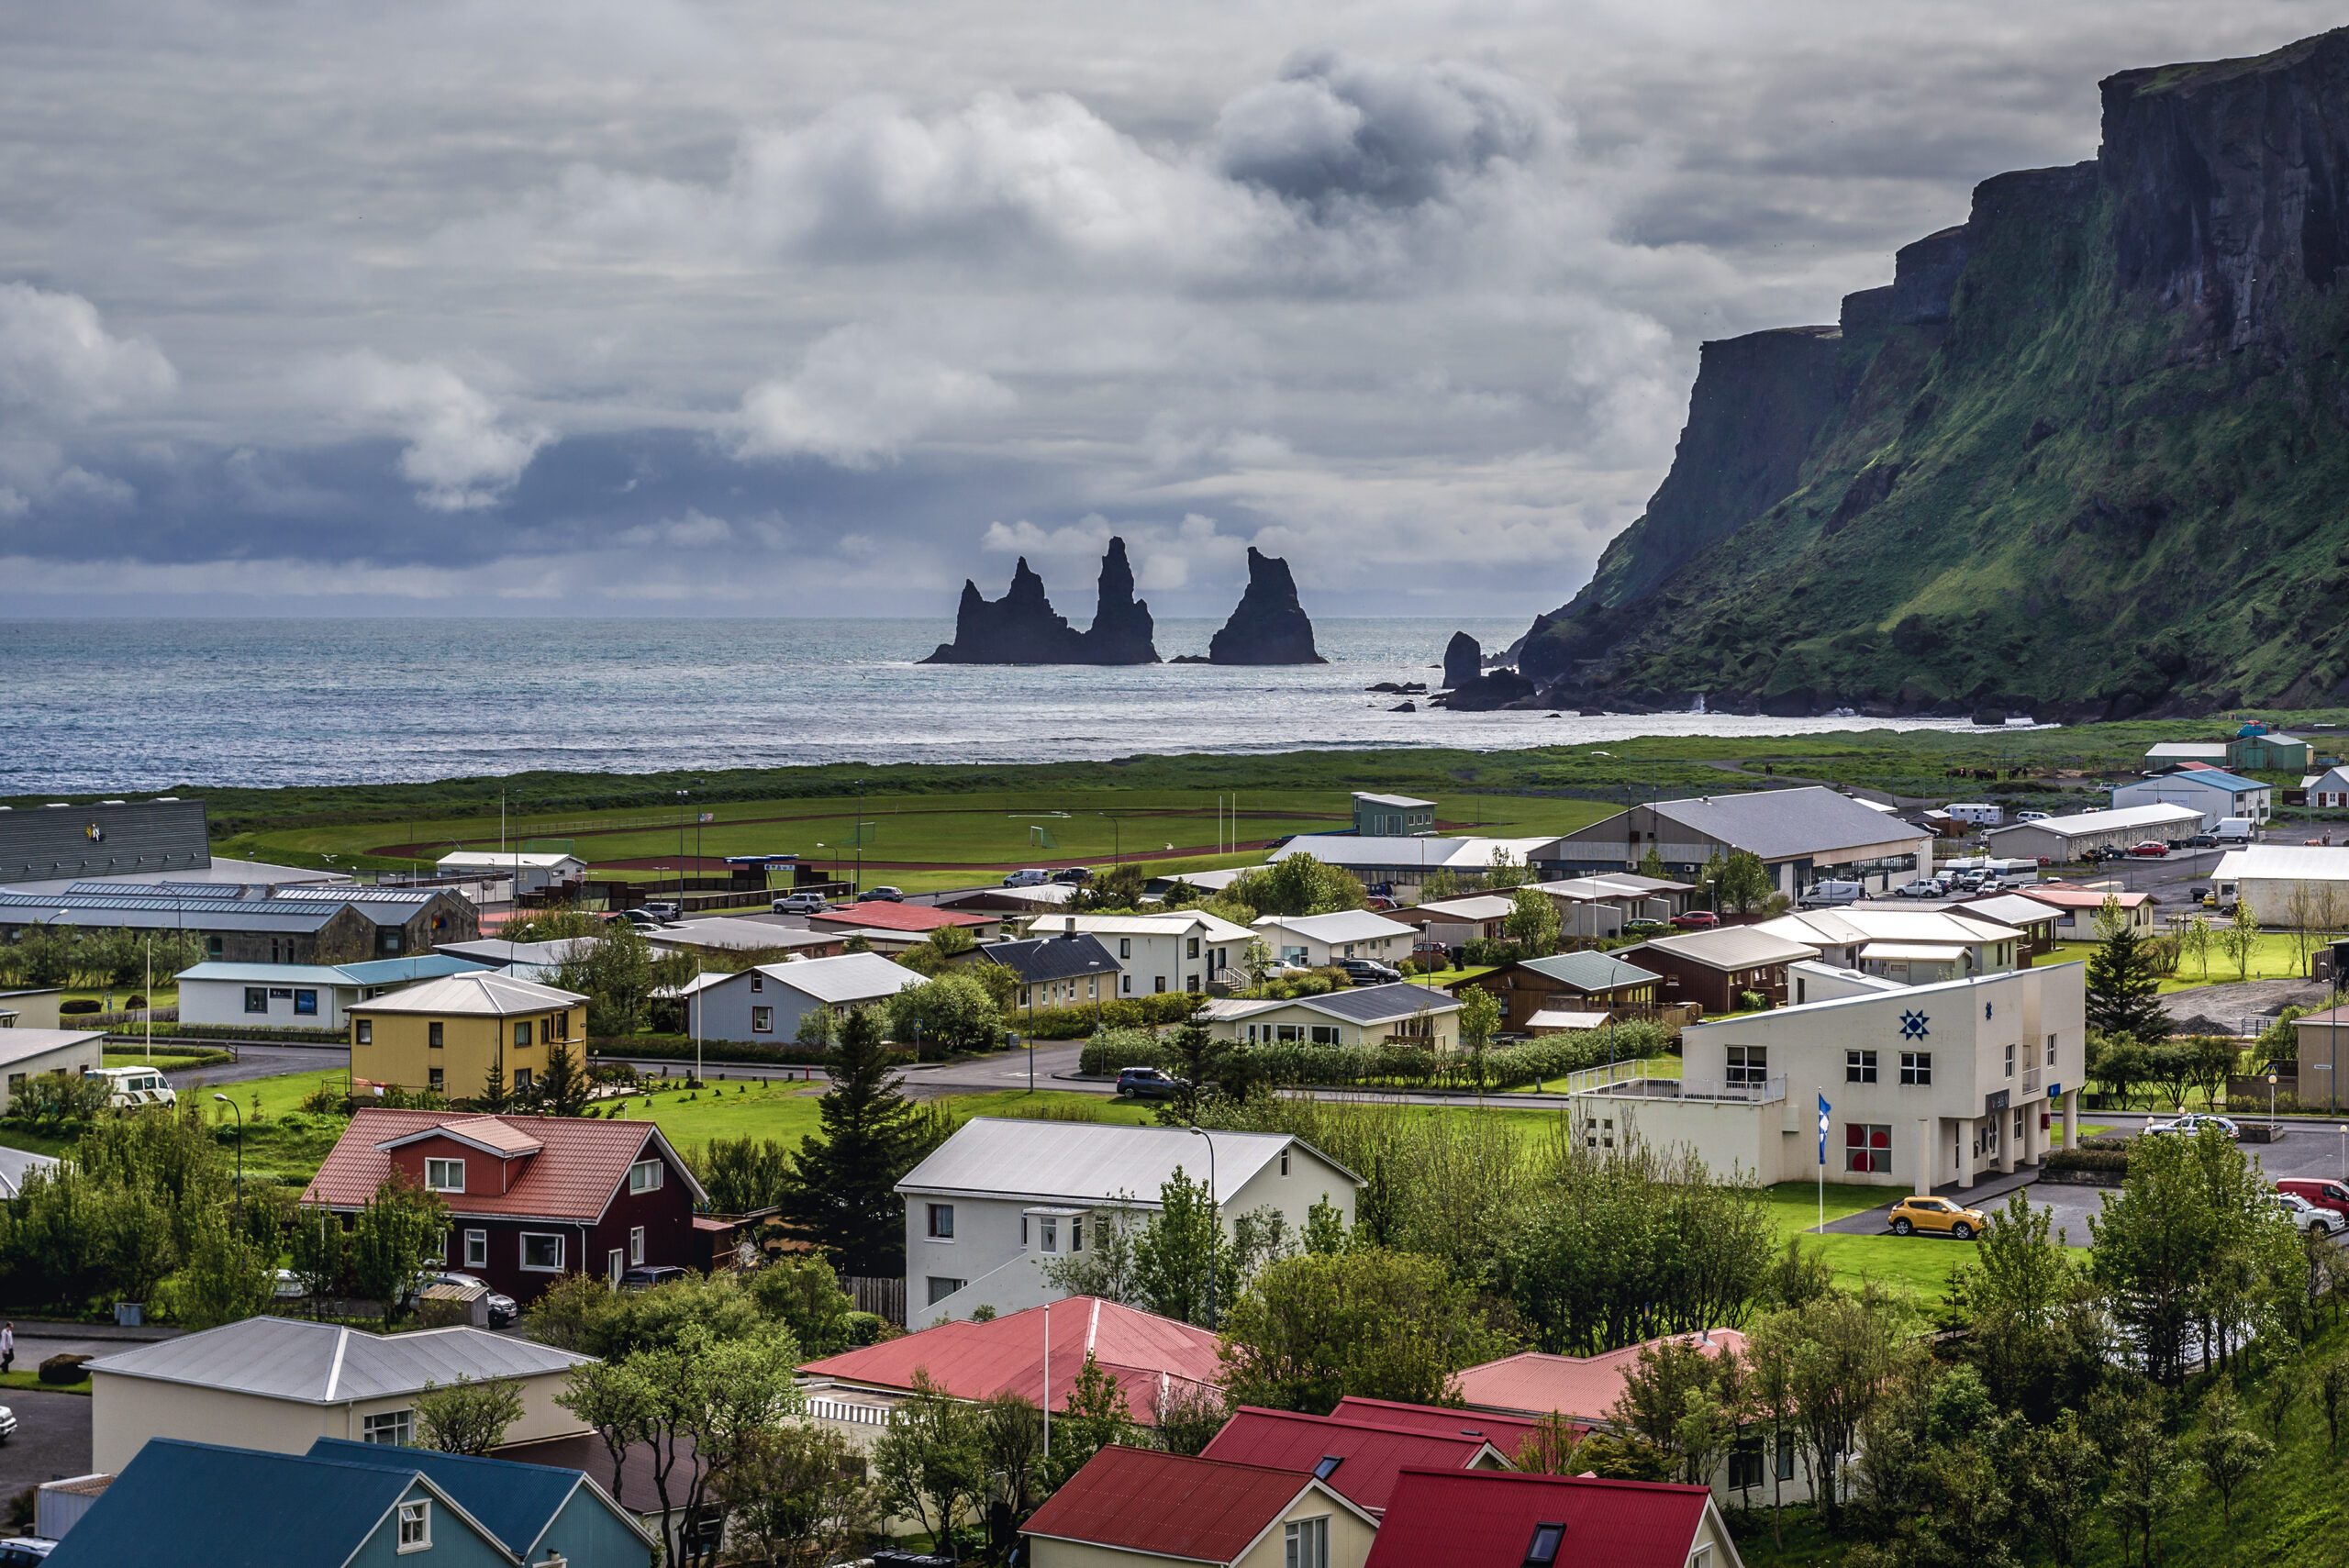 Photo of the town of Vik in Iceland.